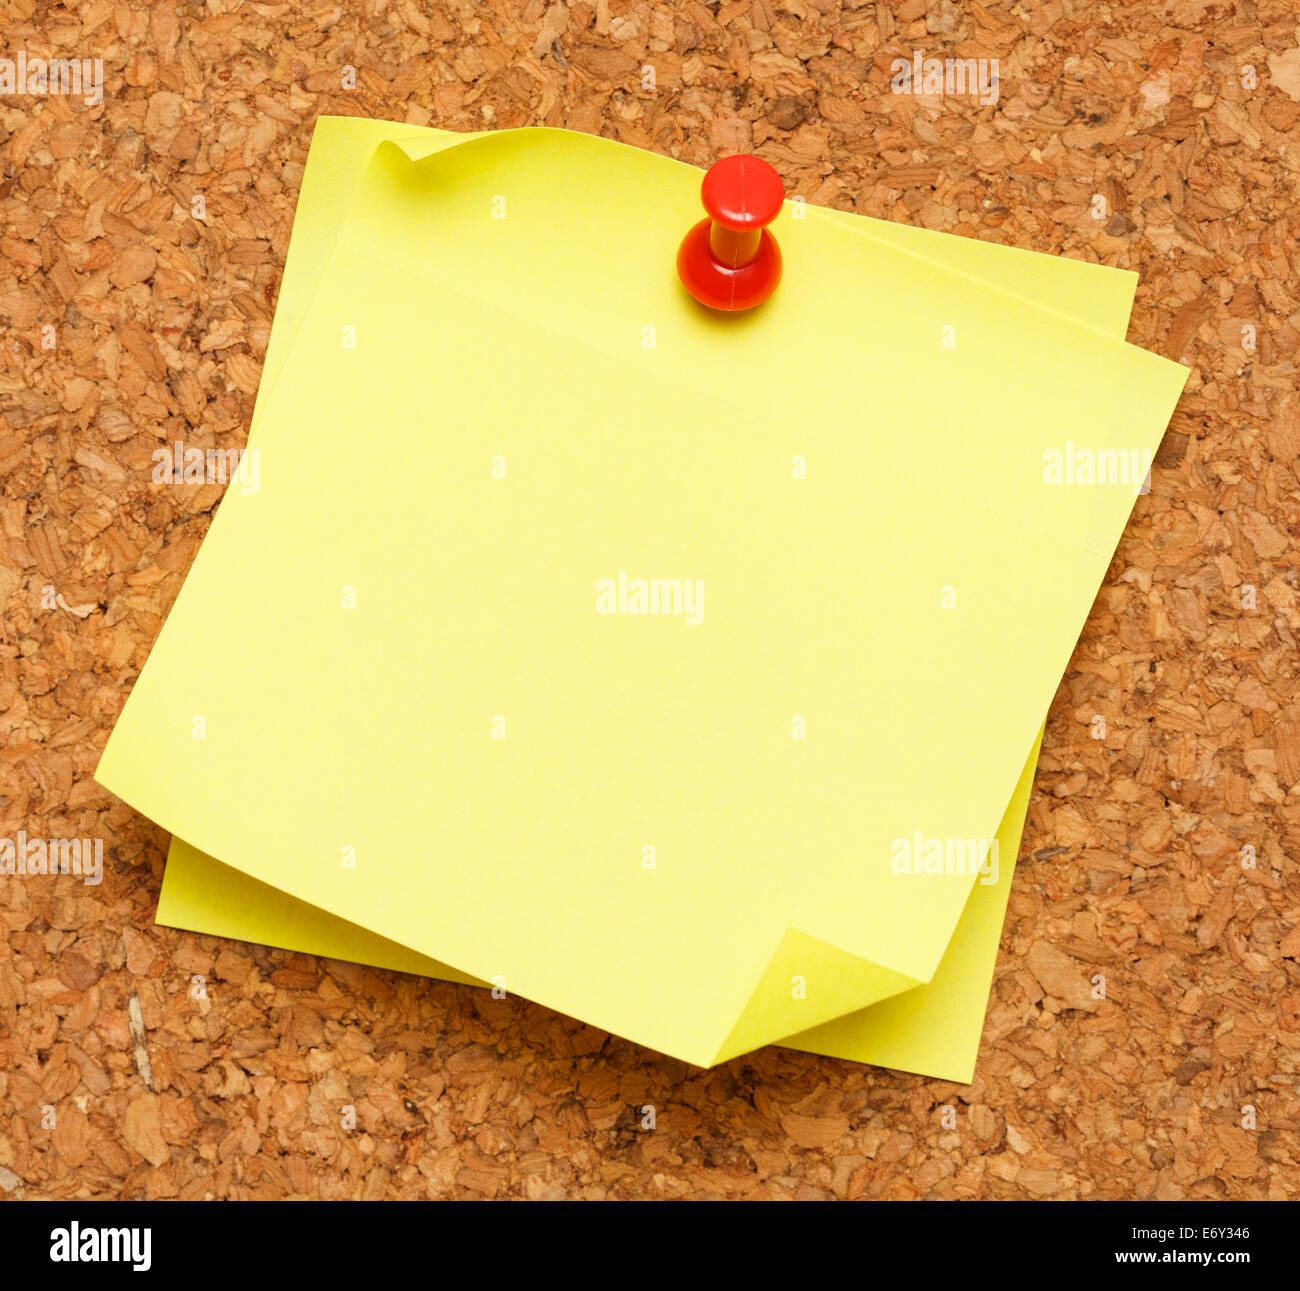 Two blank yellow sticky notes pinned onto cork board. - Stock Image